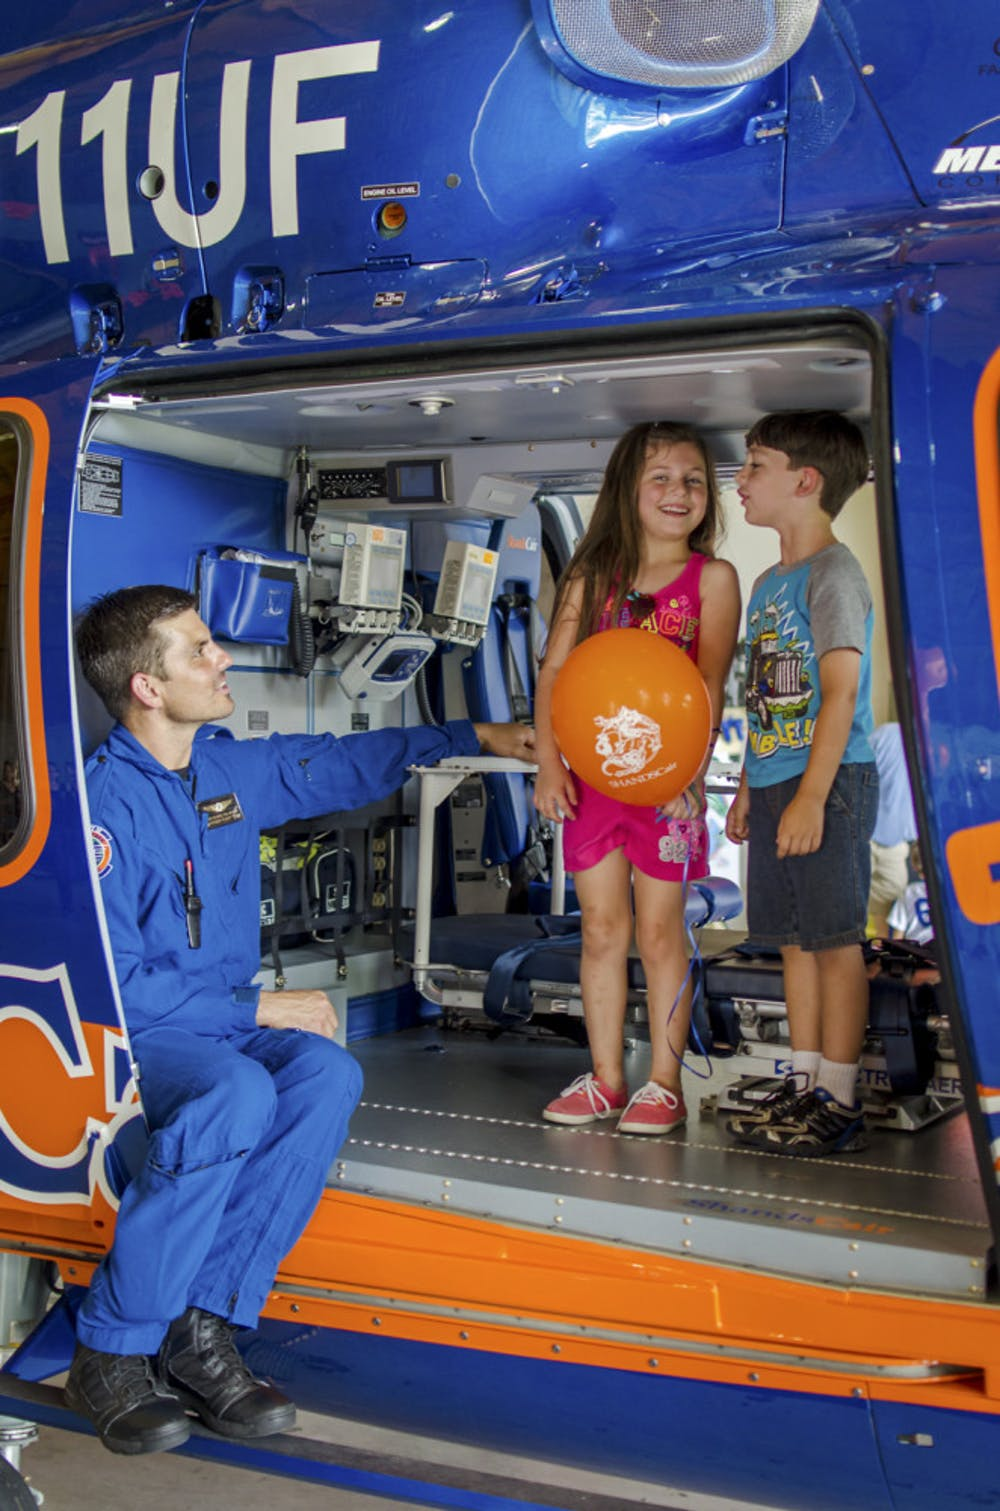 <p>Flight Paramedic Jesse Blaire, 37, shows Snow Whitman, 6, and her brother Blaze, 5, the interior of Shands Hostpial's new EC-155 helicopter. The new model can travel 45 mph faster and can accommodate an extra patient and crew member, improving their capability to transport patients. ShandsCair held an open house on Saturday to celebrate the new addition.</p>